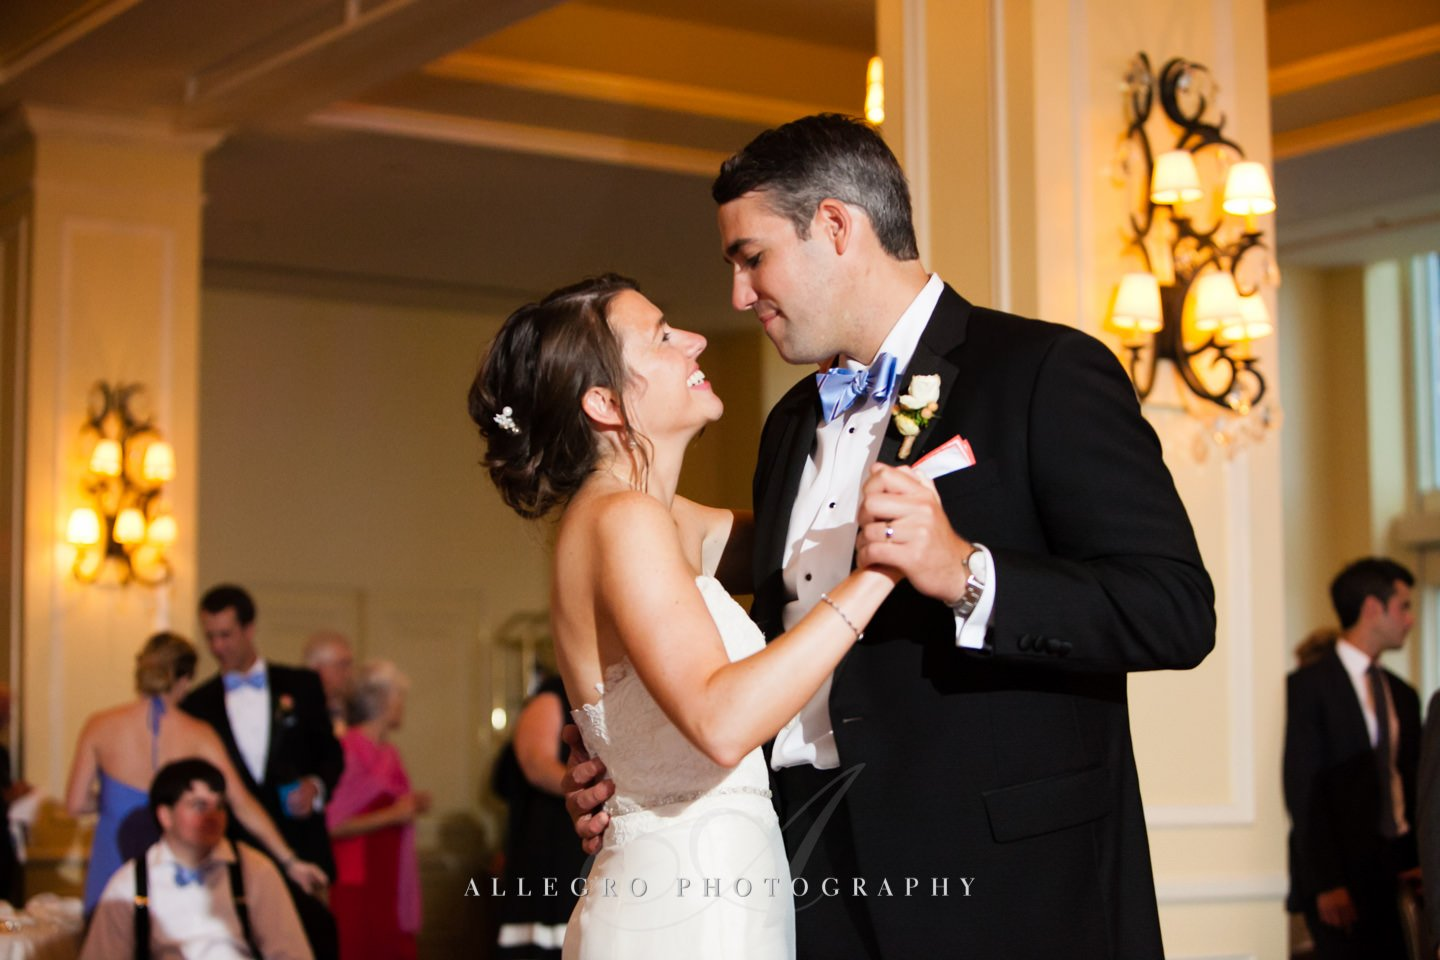 first dance photo by Allegro Photography